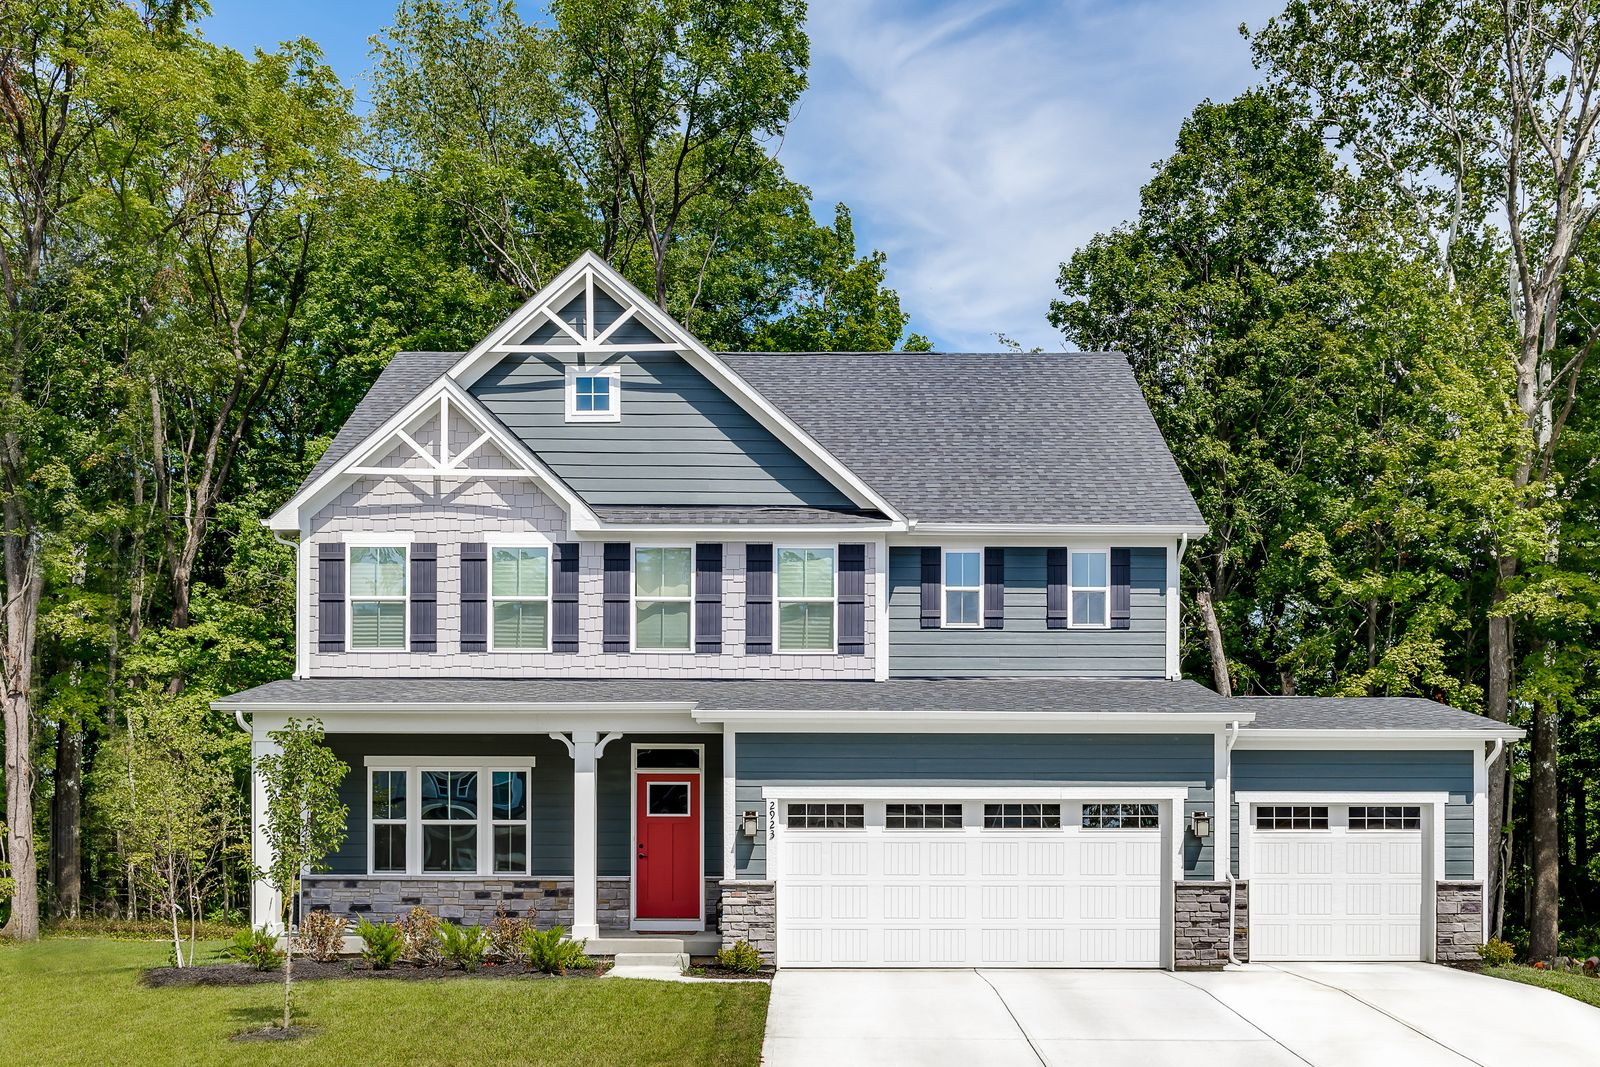 Welcome Home to Streamside, Cul-de-sac homesites now available!:2-story & ranch homes with large, wooded homesites in the Village of Batavia! Enjoy Batavia Schools, finished basements & close proximity to Rt. 32. Eligible for Tax Abatement.Schedule a visit today!